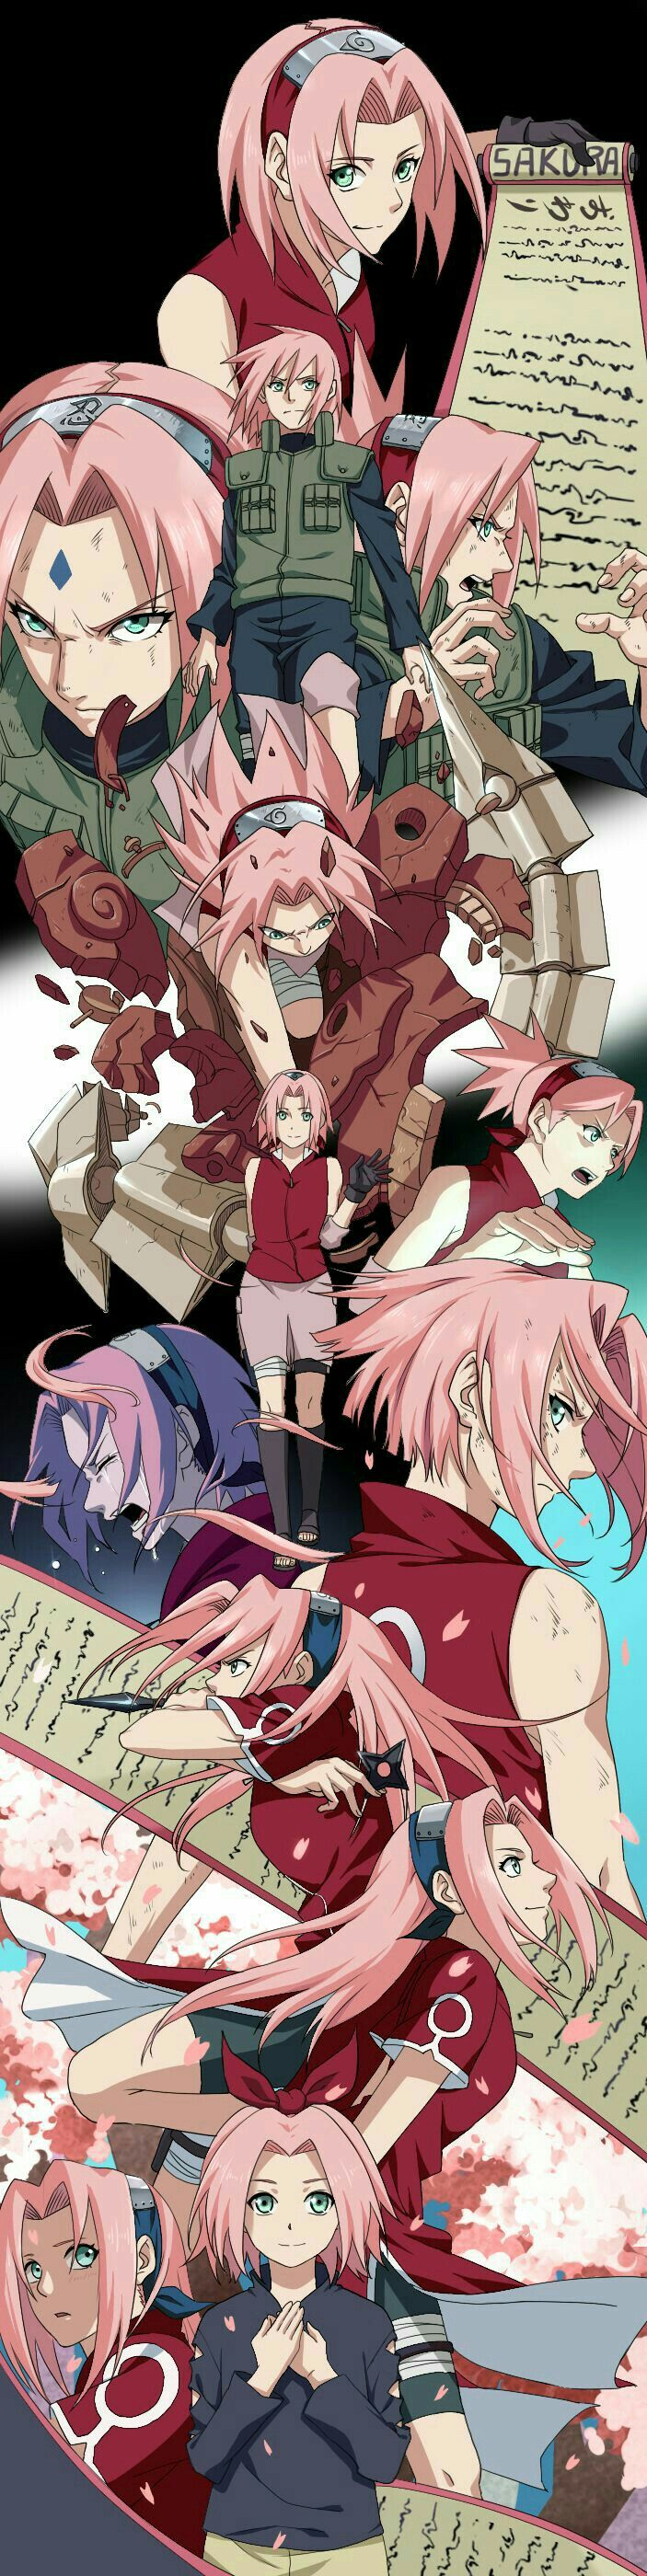 Haruno Sakura, young, childhood, different ages, time lapse, scroll; Naruto